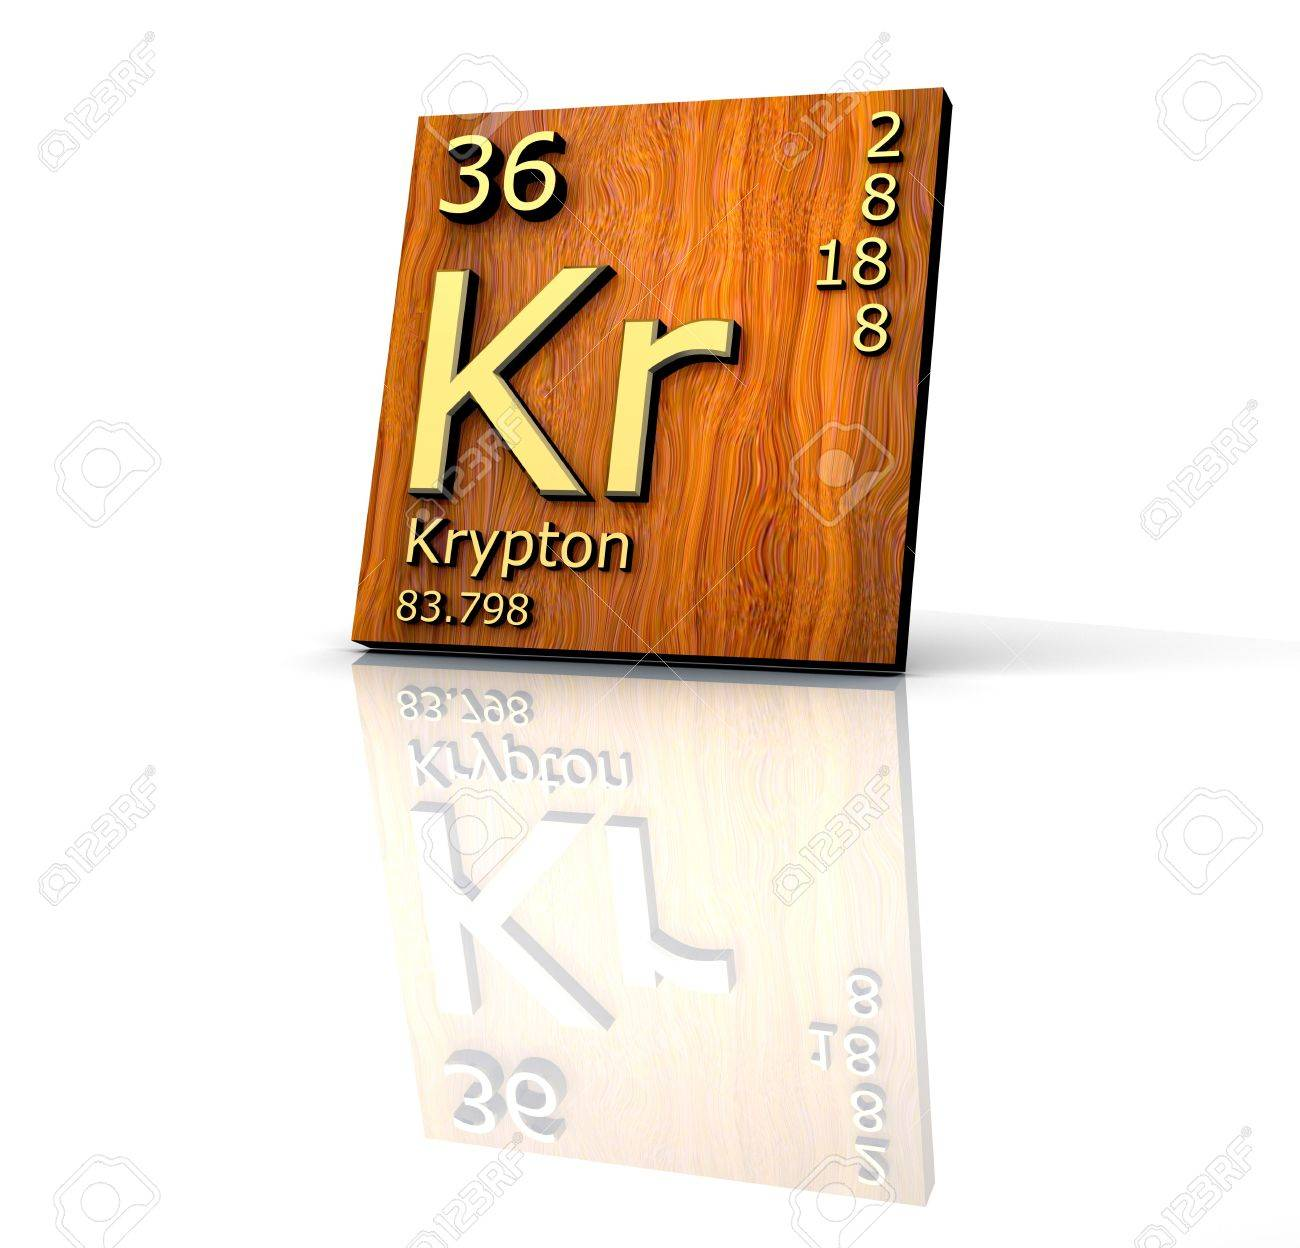 Periodic table of elements krypton gallery periodic table images krypton symbol periodic table choice image periodic table images krypton on periodic table image draw wiring gamestrikefo Images